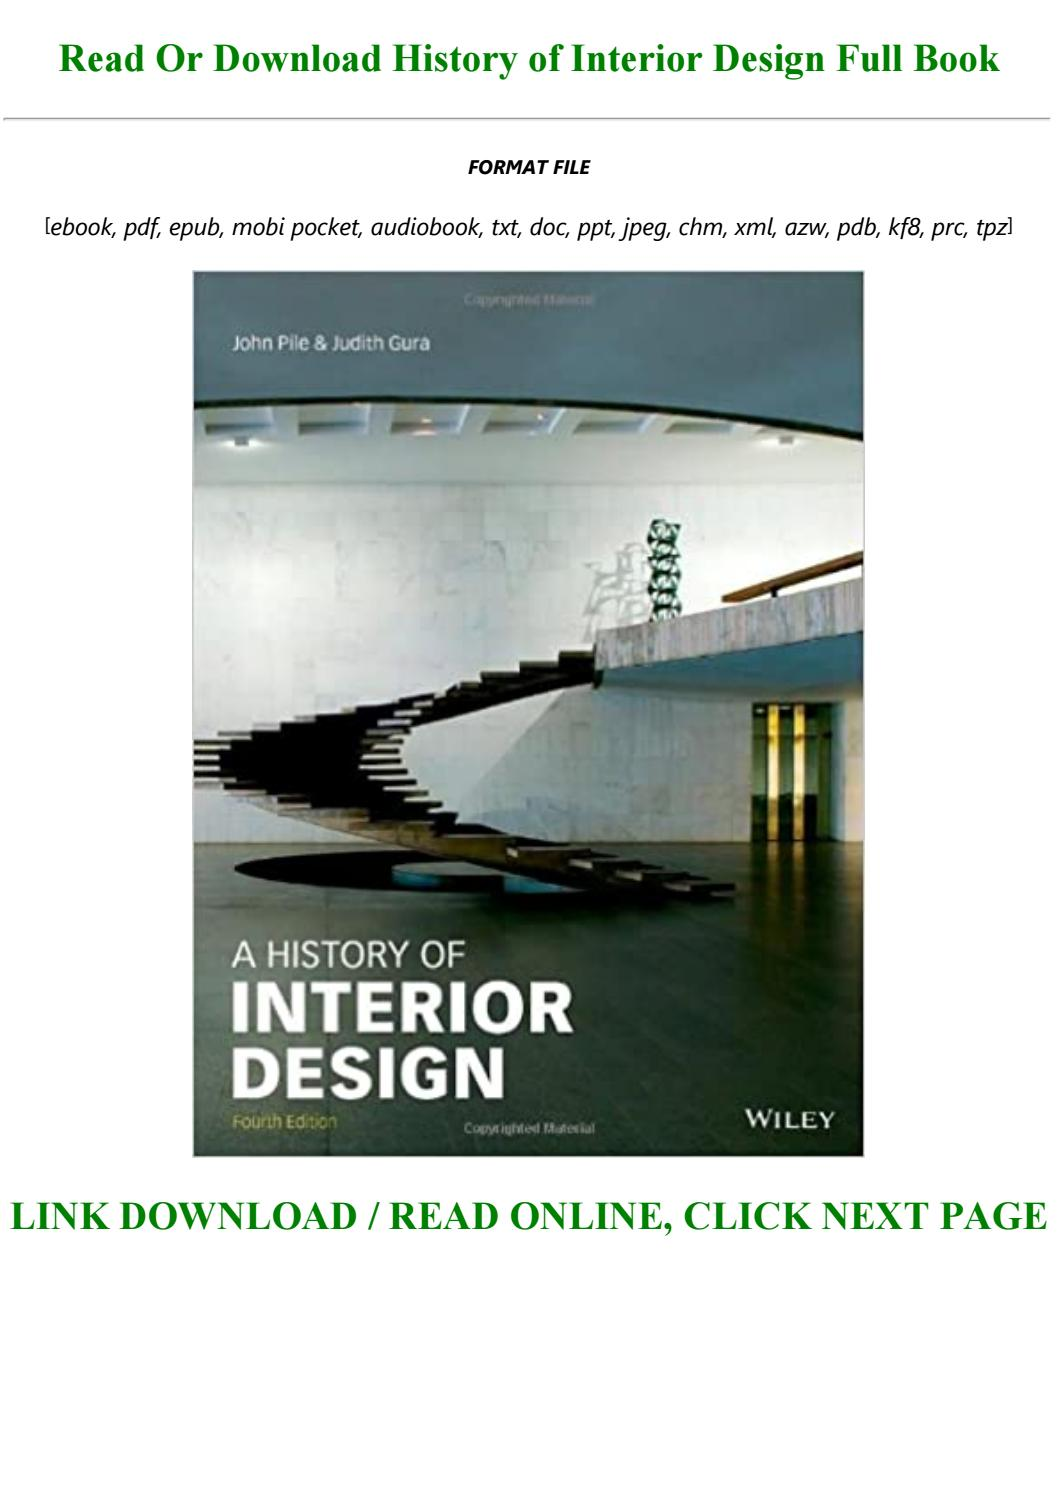 Read Book Pdf History Of Interior Design Full Acces By Rylandstevens1997 Issuu